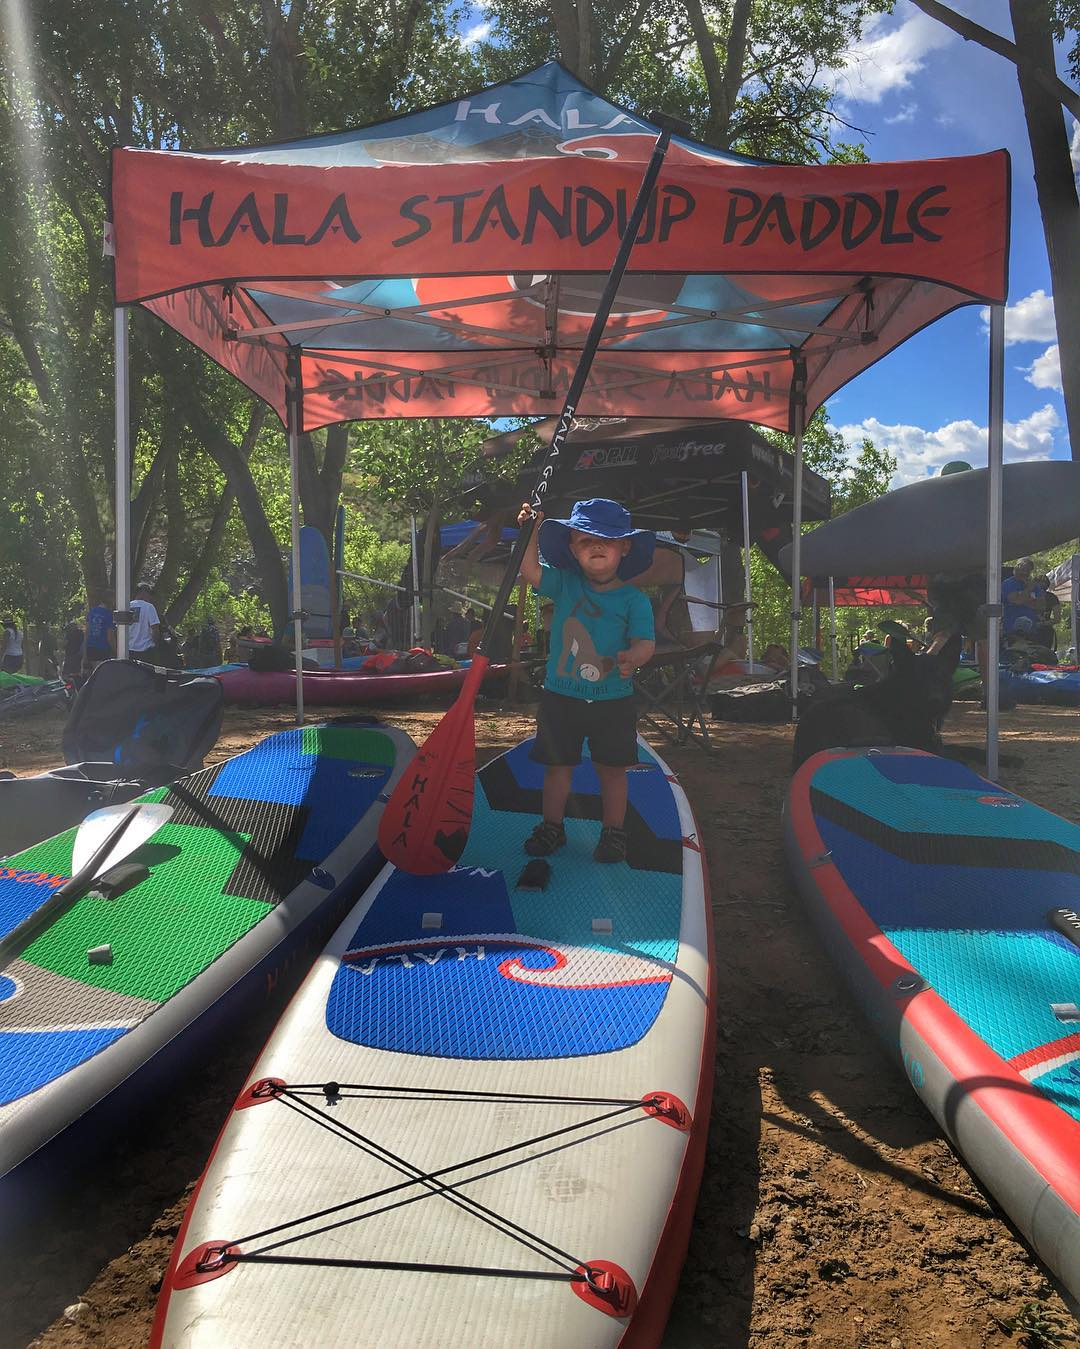 Ready for the river at the #AnimasRiverDays2016!!! Come by the booth and check us out!  #halagear #adventuredesigned #paddlewithfriends #isup #inflatable #standuppaddle #paddleboarding #suplifestyle #adventurers #sup #stand_up_paddle #paddle...